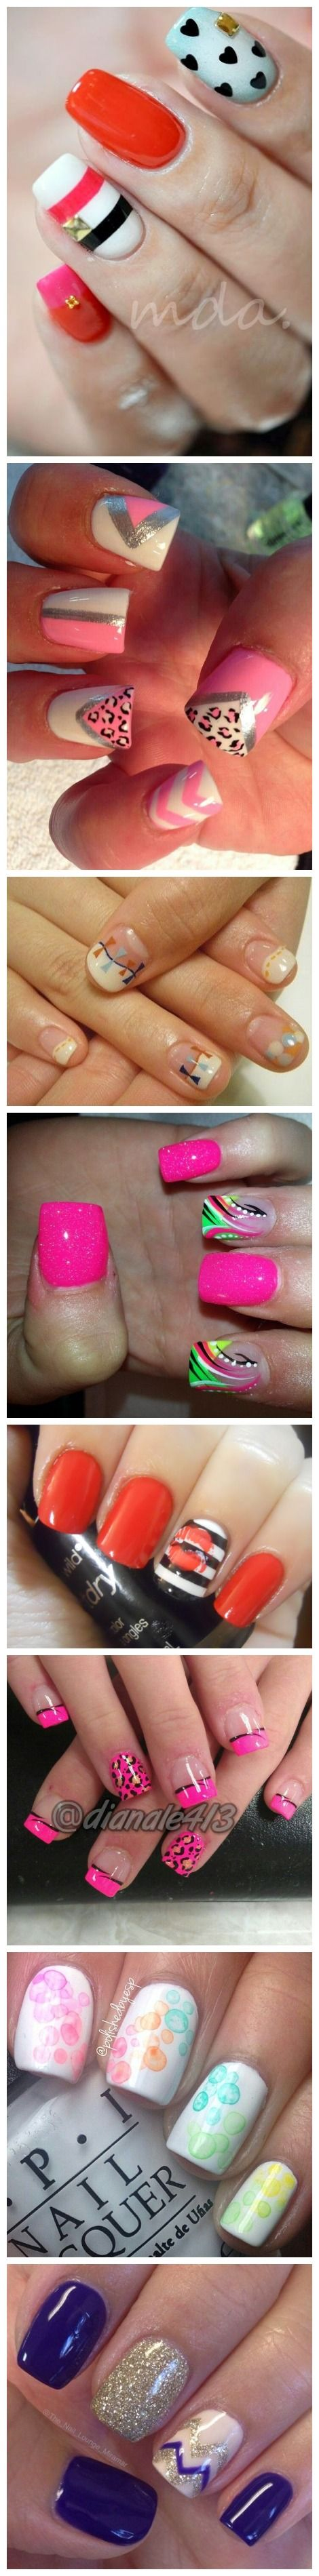 Nails Art and Designs